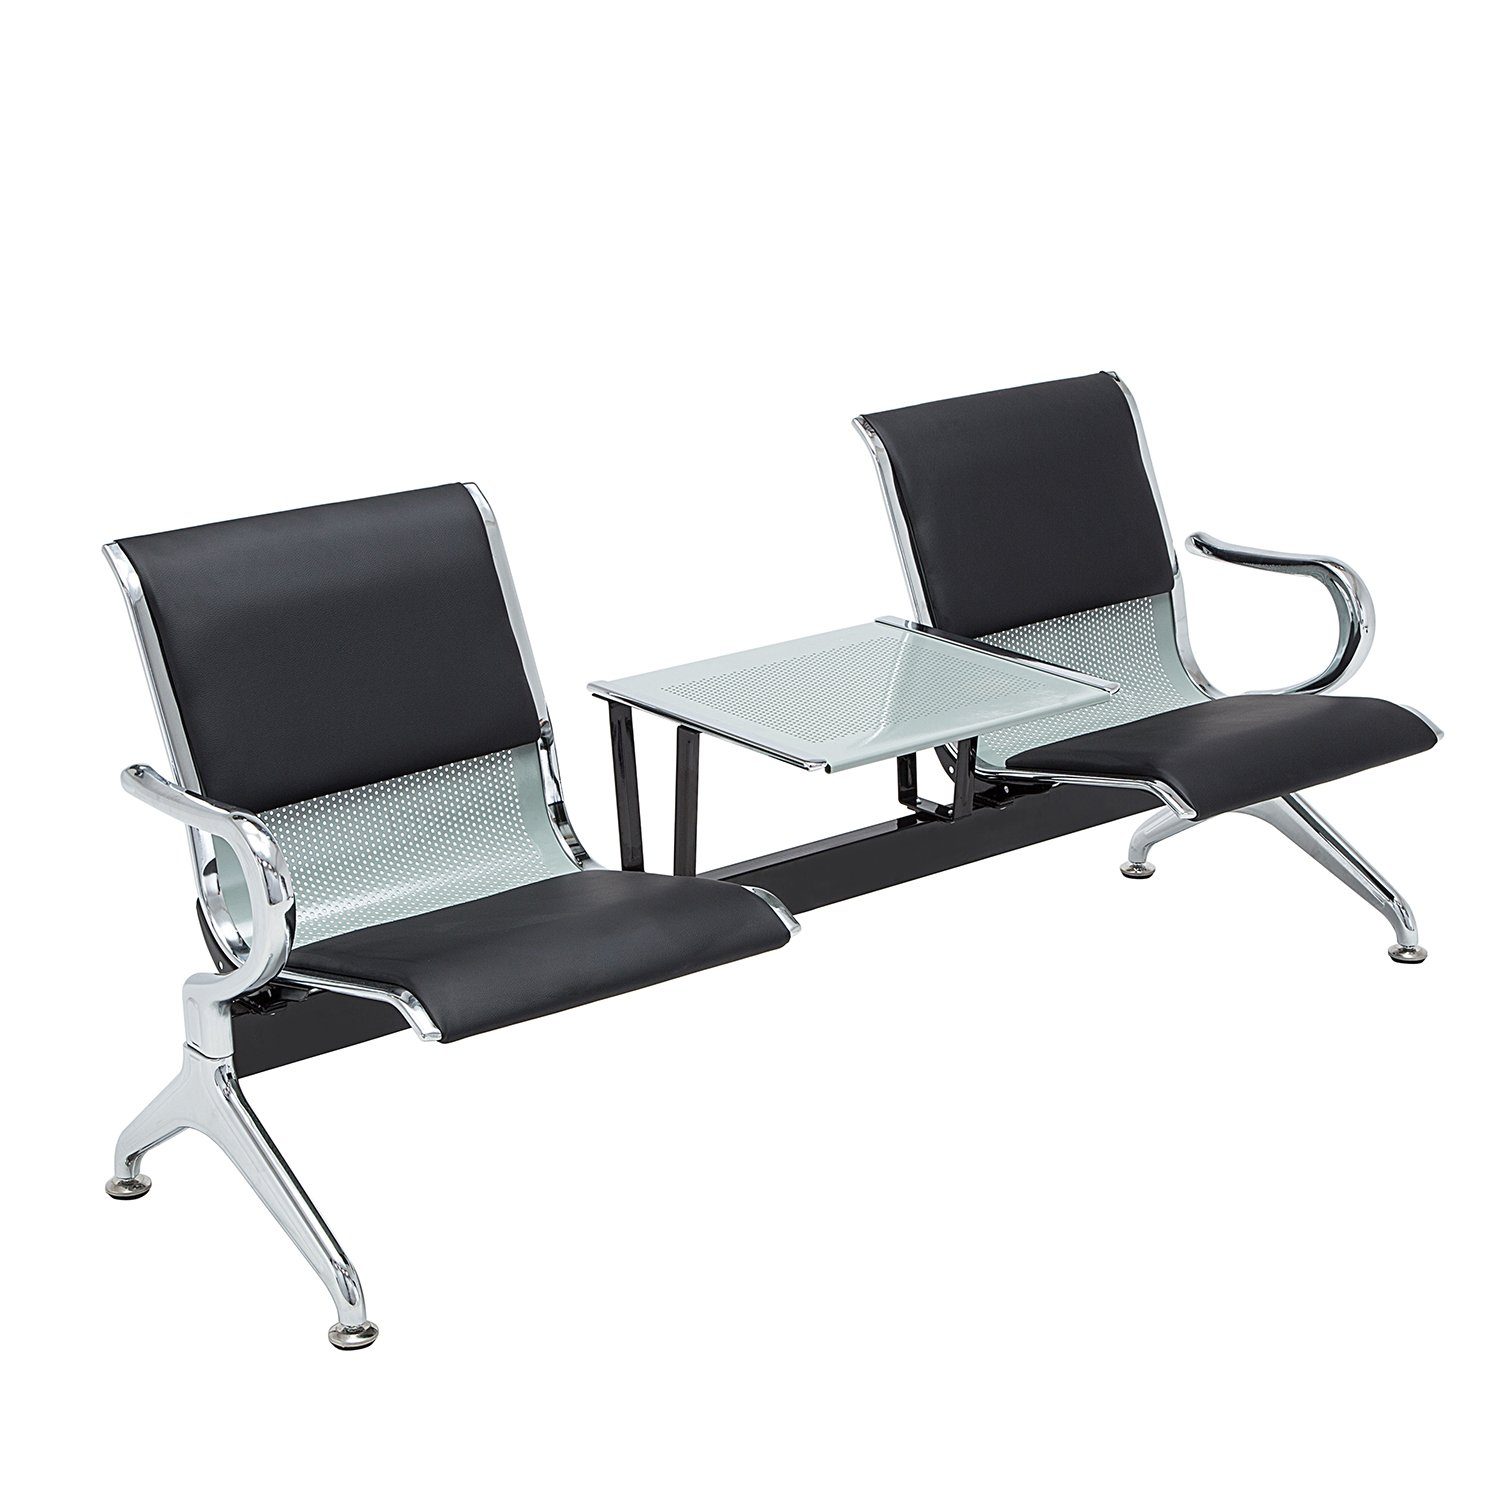 walsport 2-Seat Metal Waiting Room Chair Leather Business Reception Bench Room Garden Salon Barber Bench for Barbershop Salon Airport Bank Hospital Market, Black with Desk